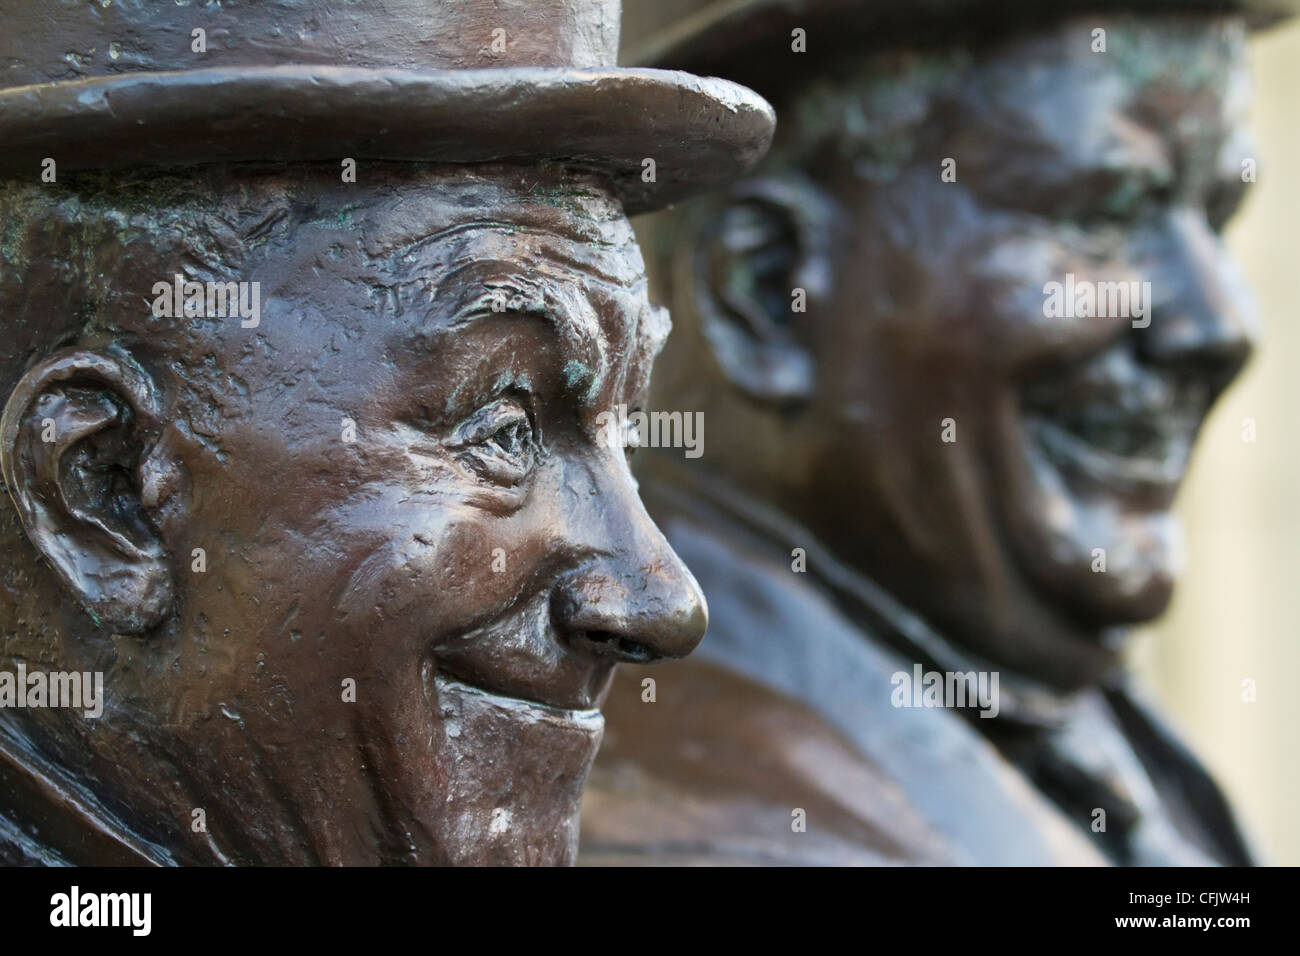 Statue of Stan Laurel and Oliver Hardy, by Graham Ibbeson, on display in Laurel's hometown of Ulverston, Cumbria, Stock Photo